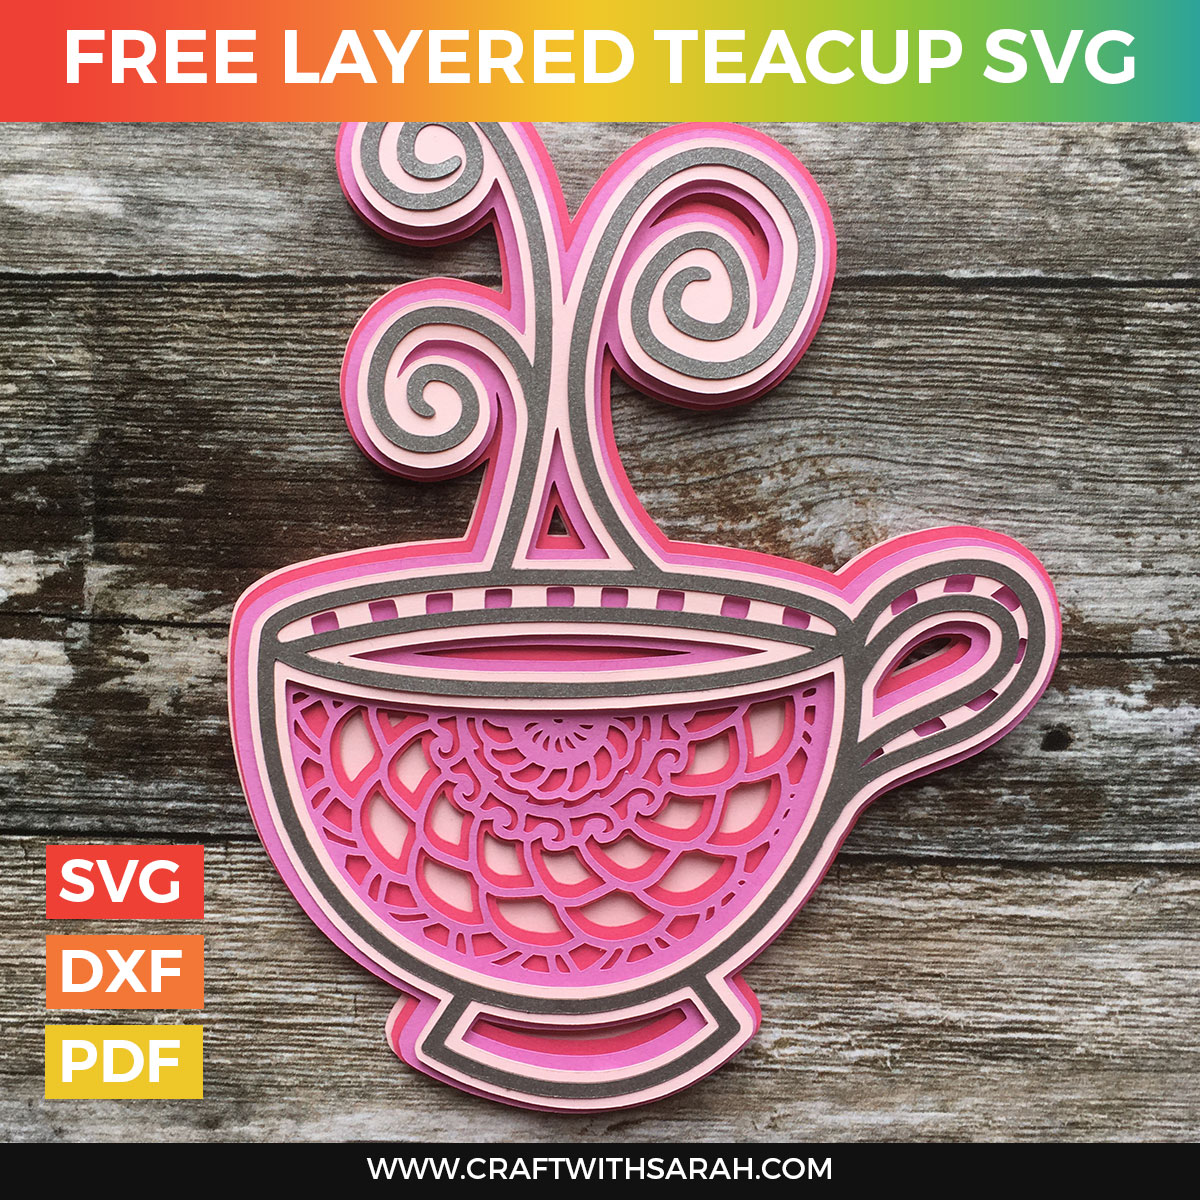 Mandala Teacup Layered SVG